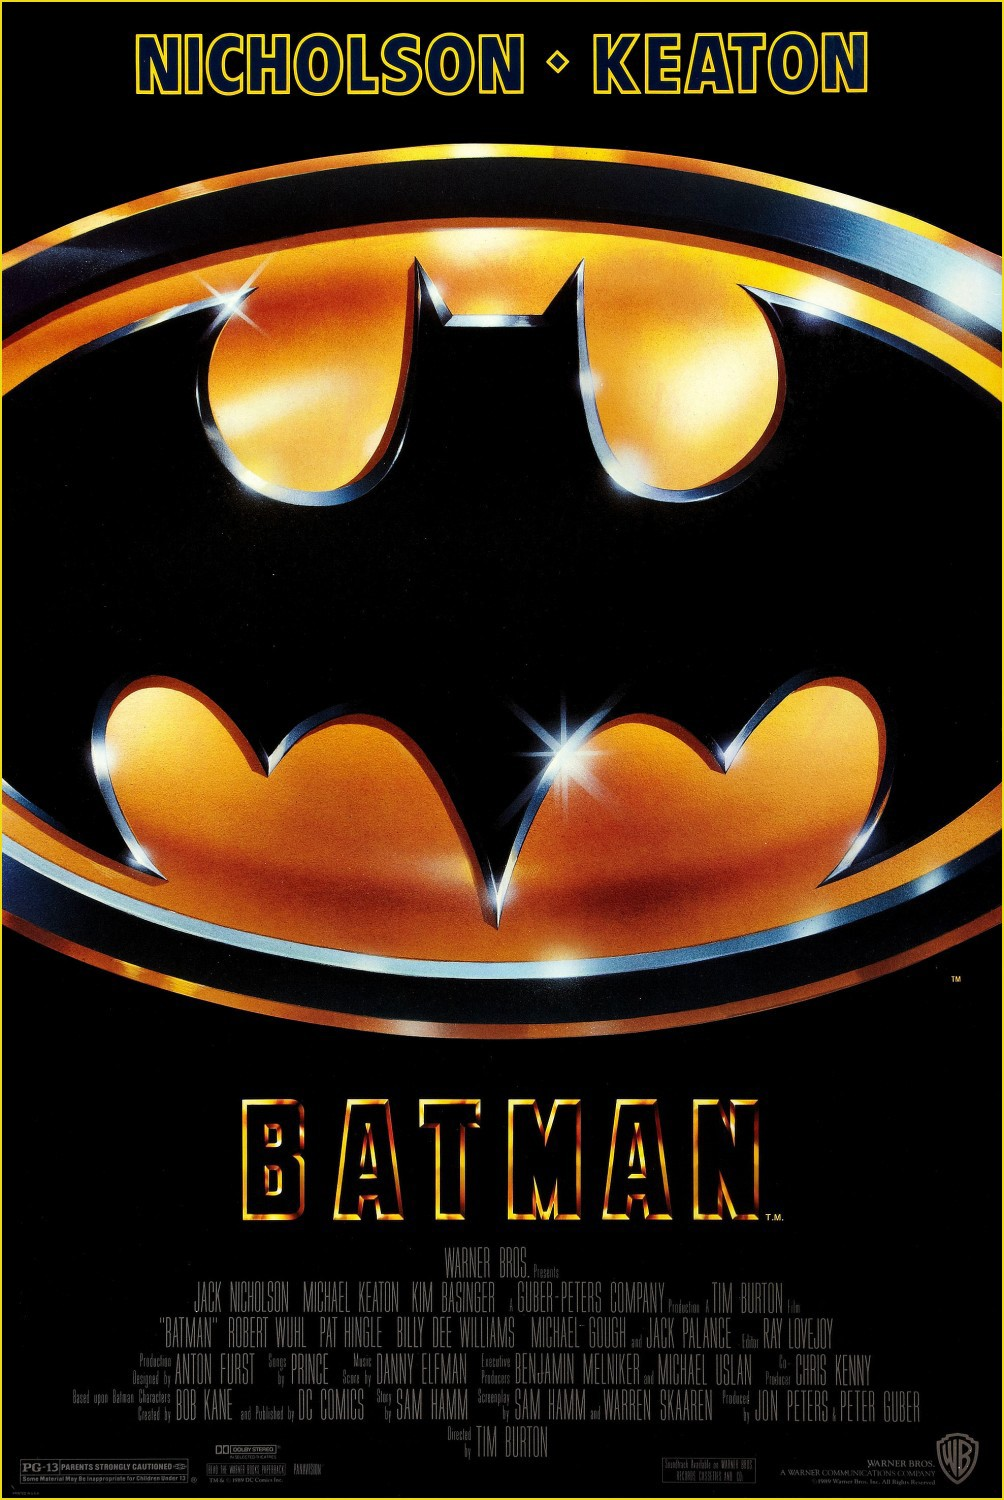 BATMAN [1989] • 30th Anniversary [Re-Release]